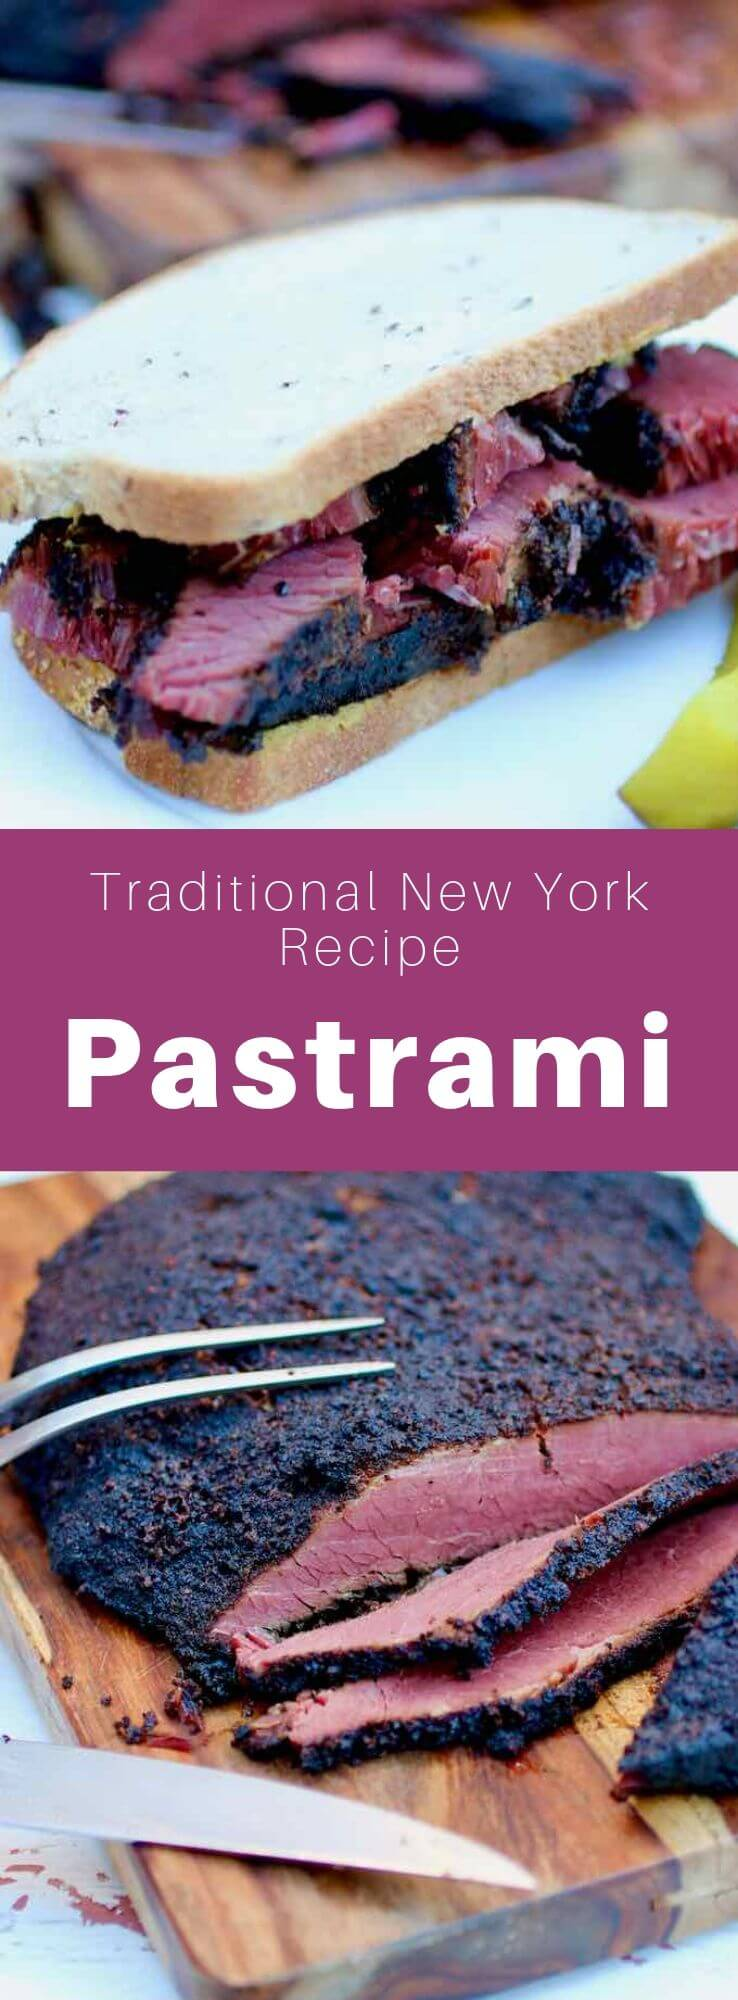 Pastrami is the very popular highly seasoned smoked beef prepared especially from shoulder cuts, that is first brined, then smoked, and finally steamed. #AmericanRecipe #AmericanFood #AmericanCuisine #JewishFood #JewishRecipe #JewishCuisine #JewishDeli #KosherDeli #NewYorkRecipe #WorldCuisine #196flavors